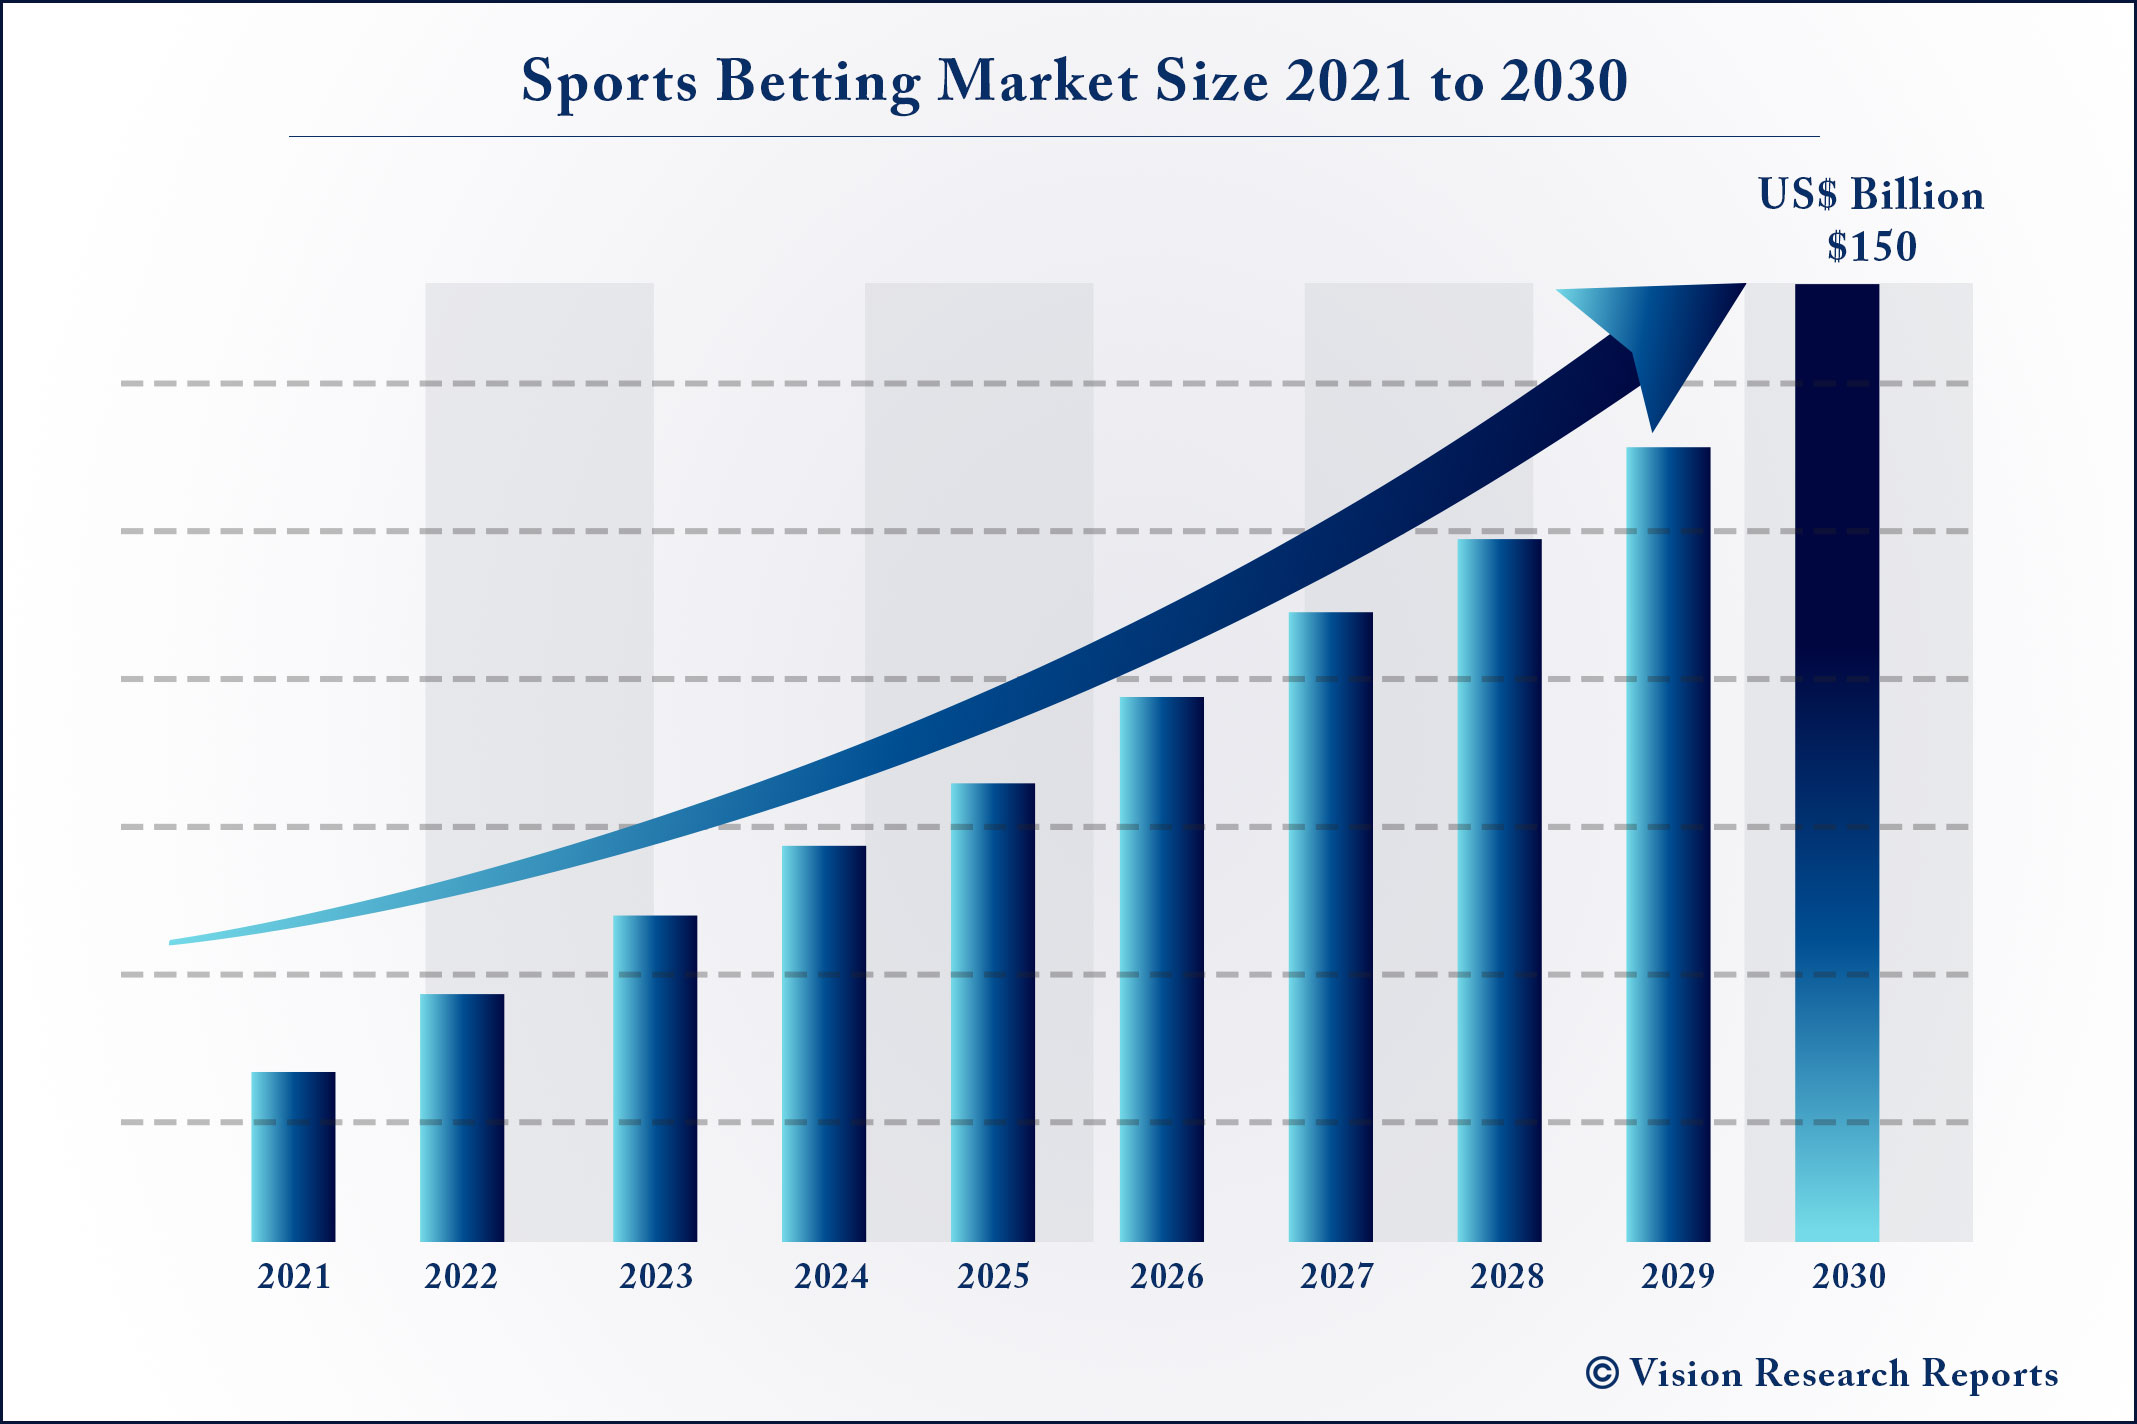 Sports Betting Market Size 2021 to 2030